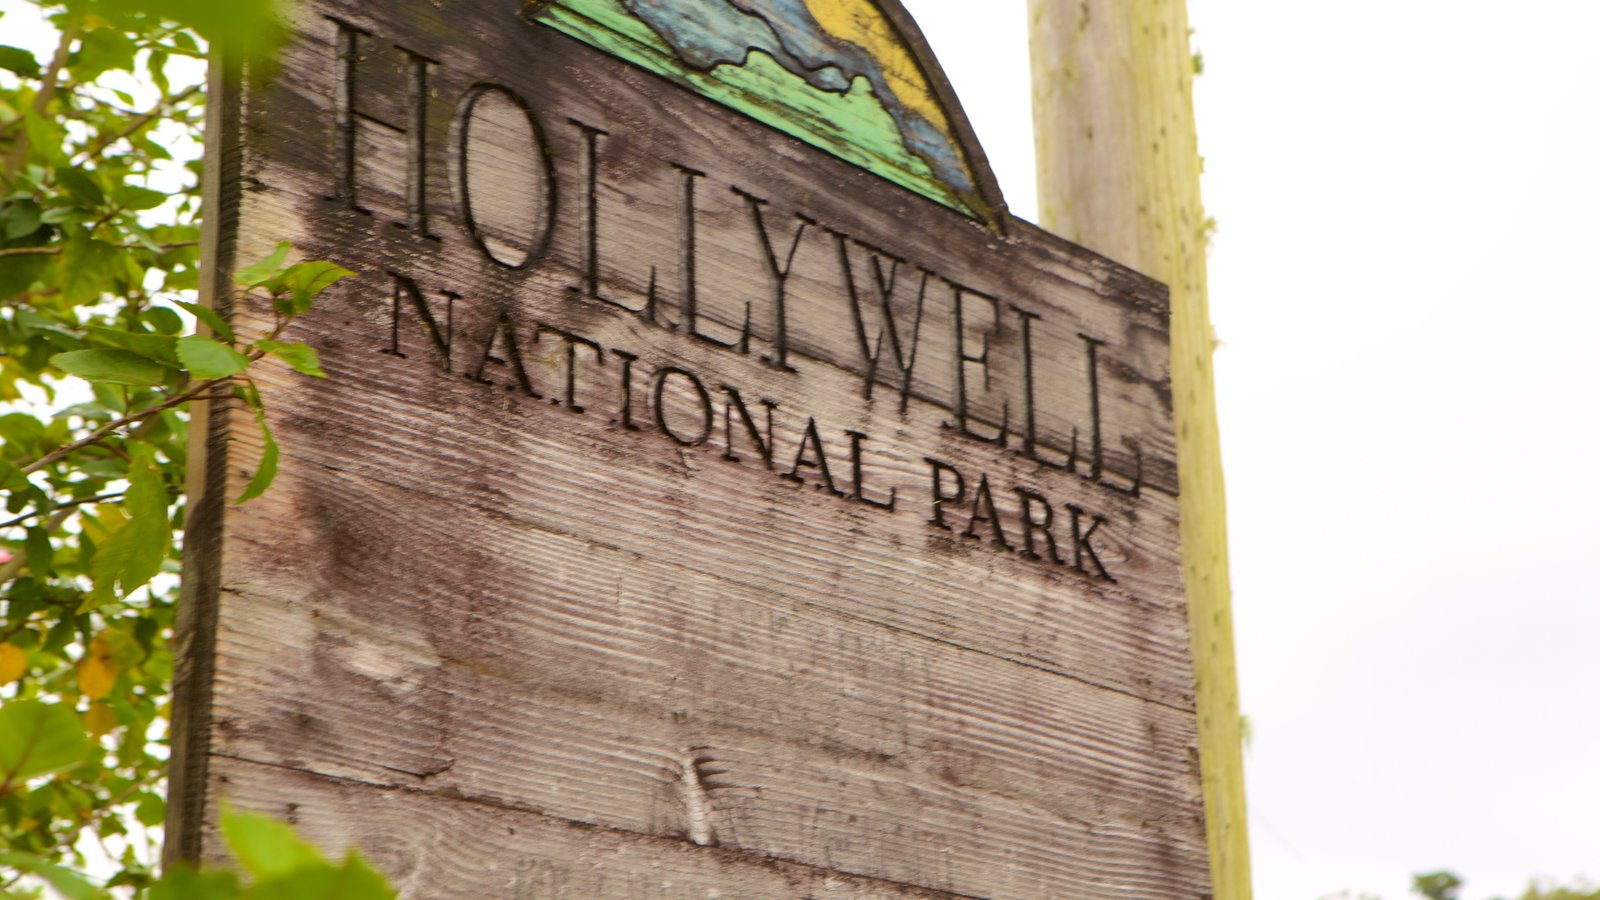 Holywell Park featuring signage